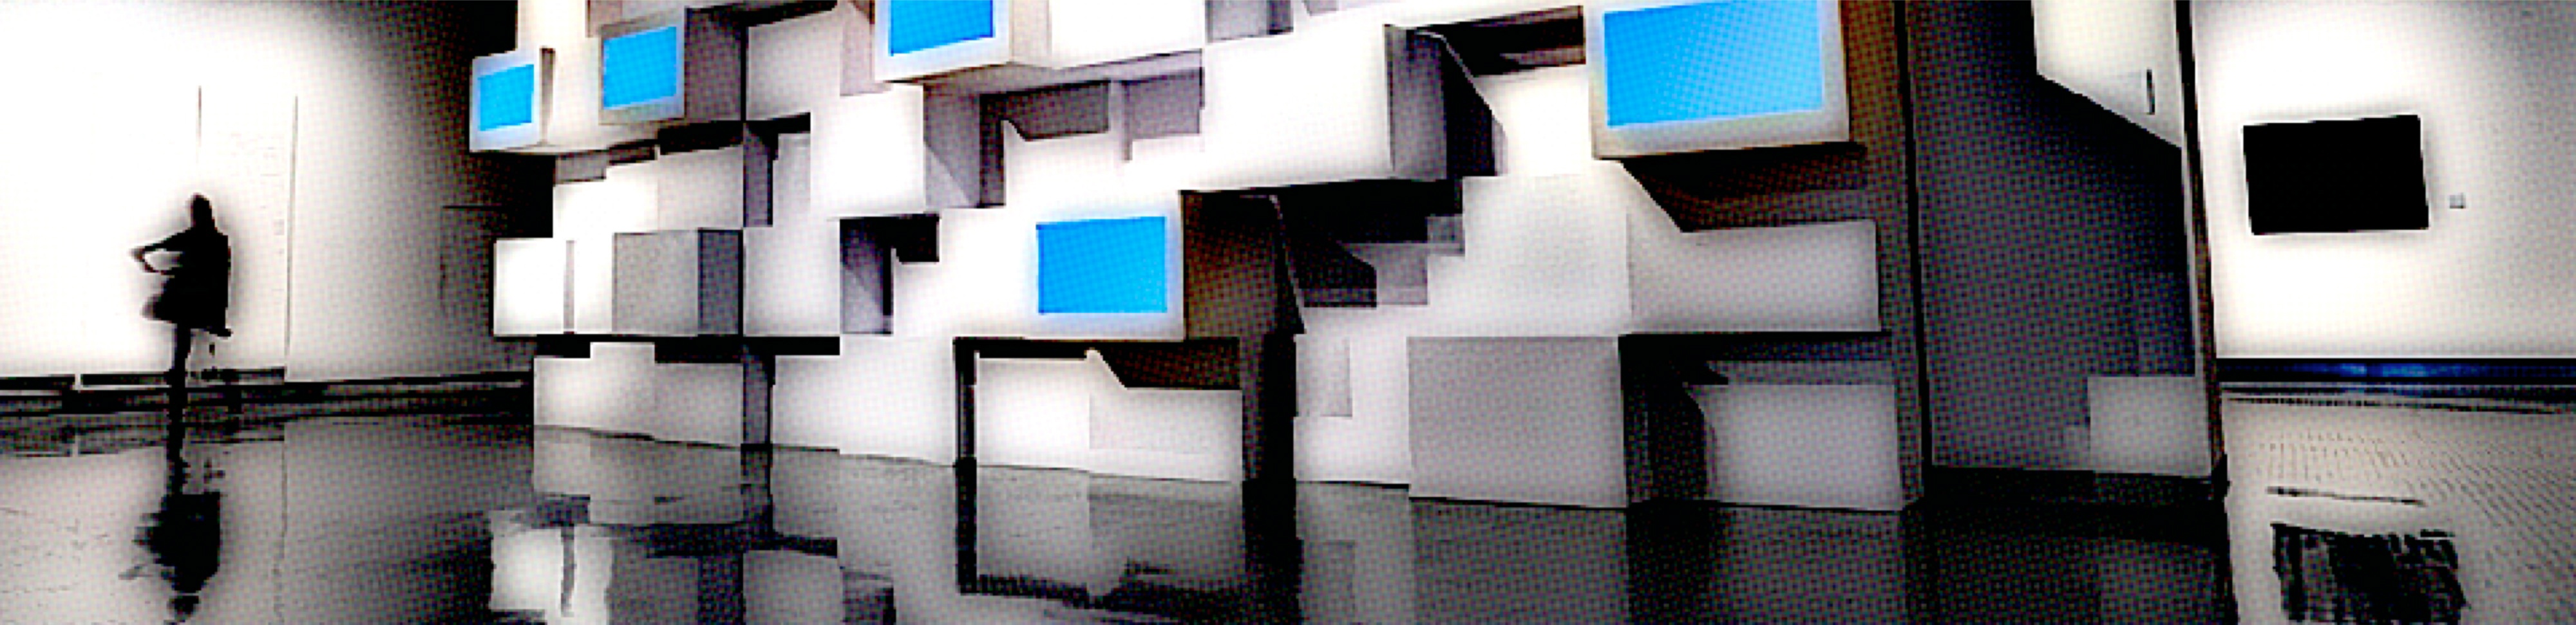 Sensory Effects for museums